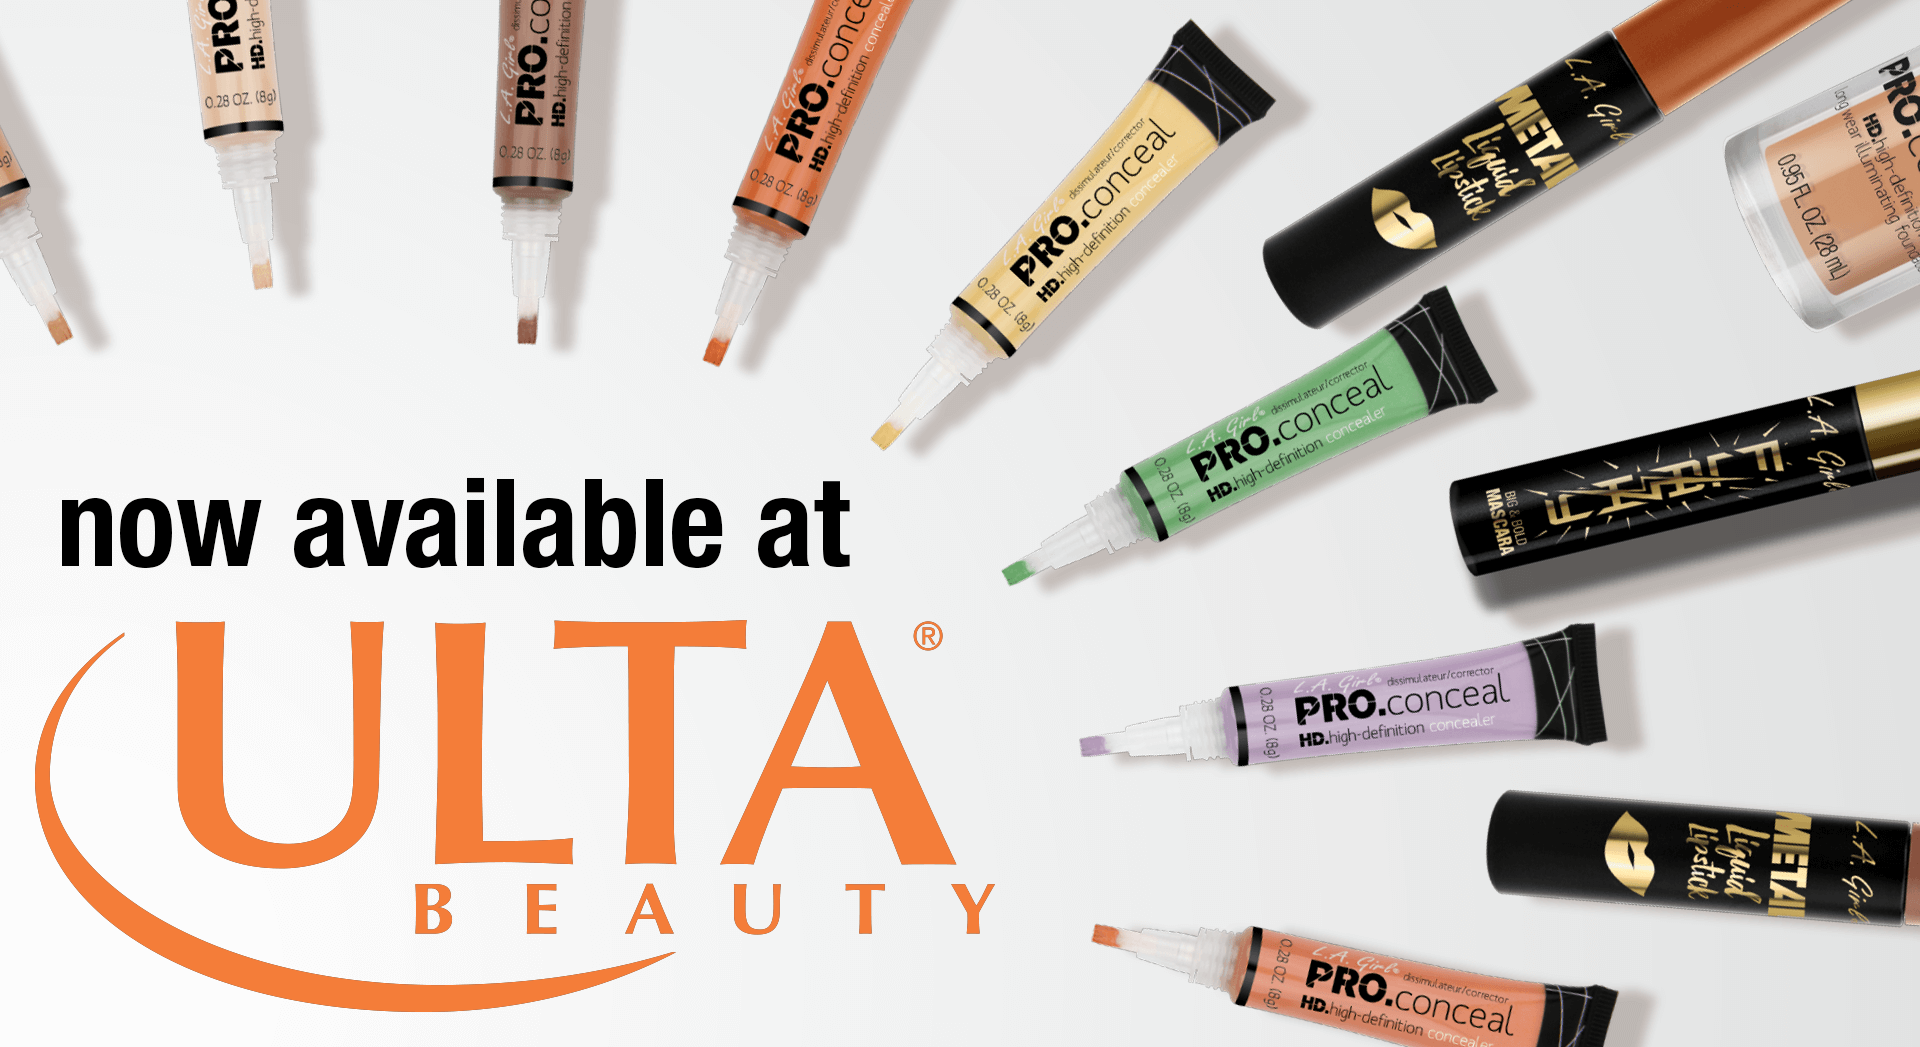 available at Ulta